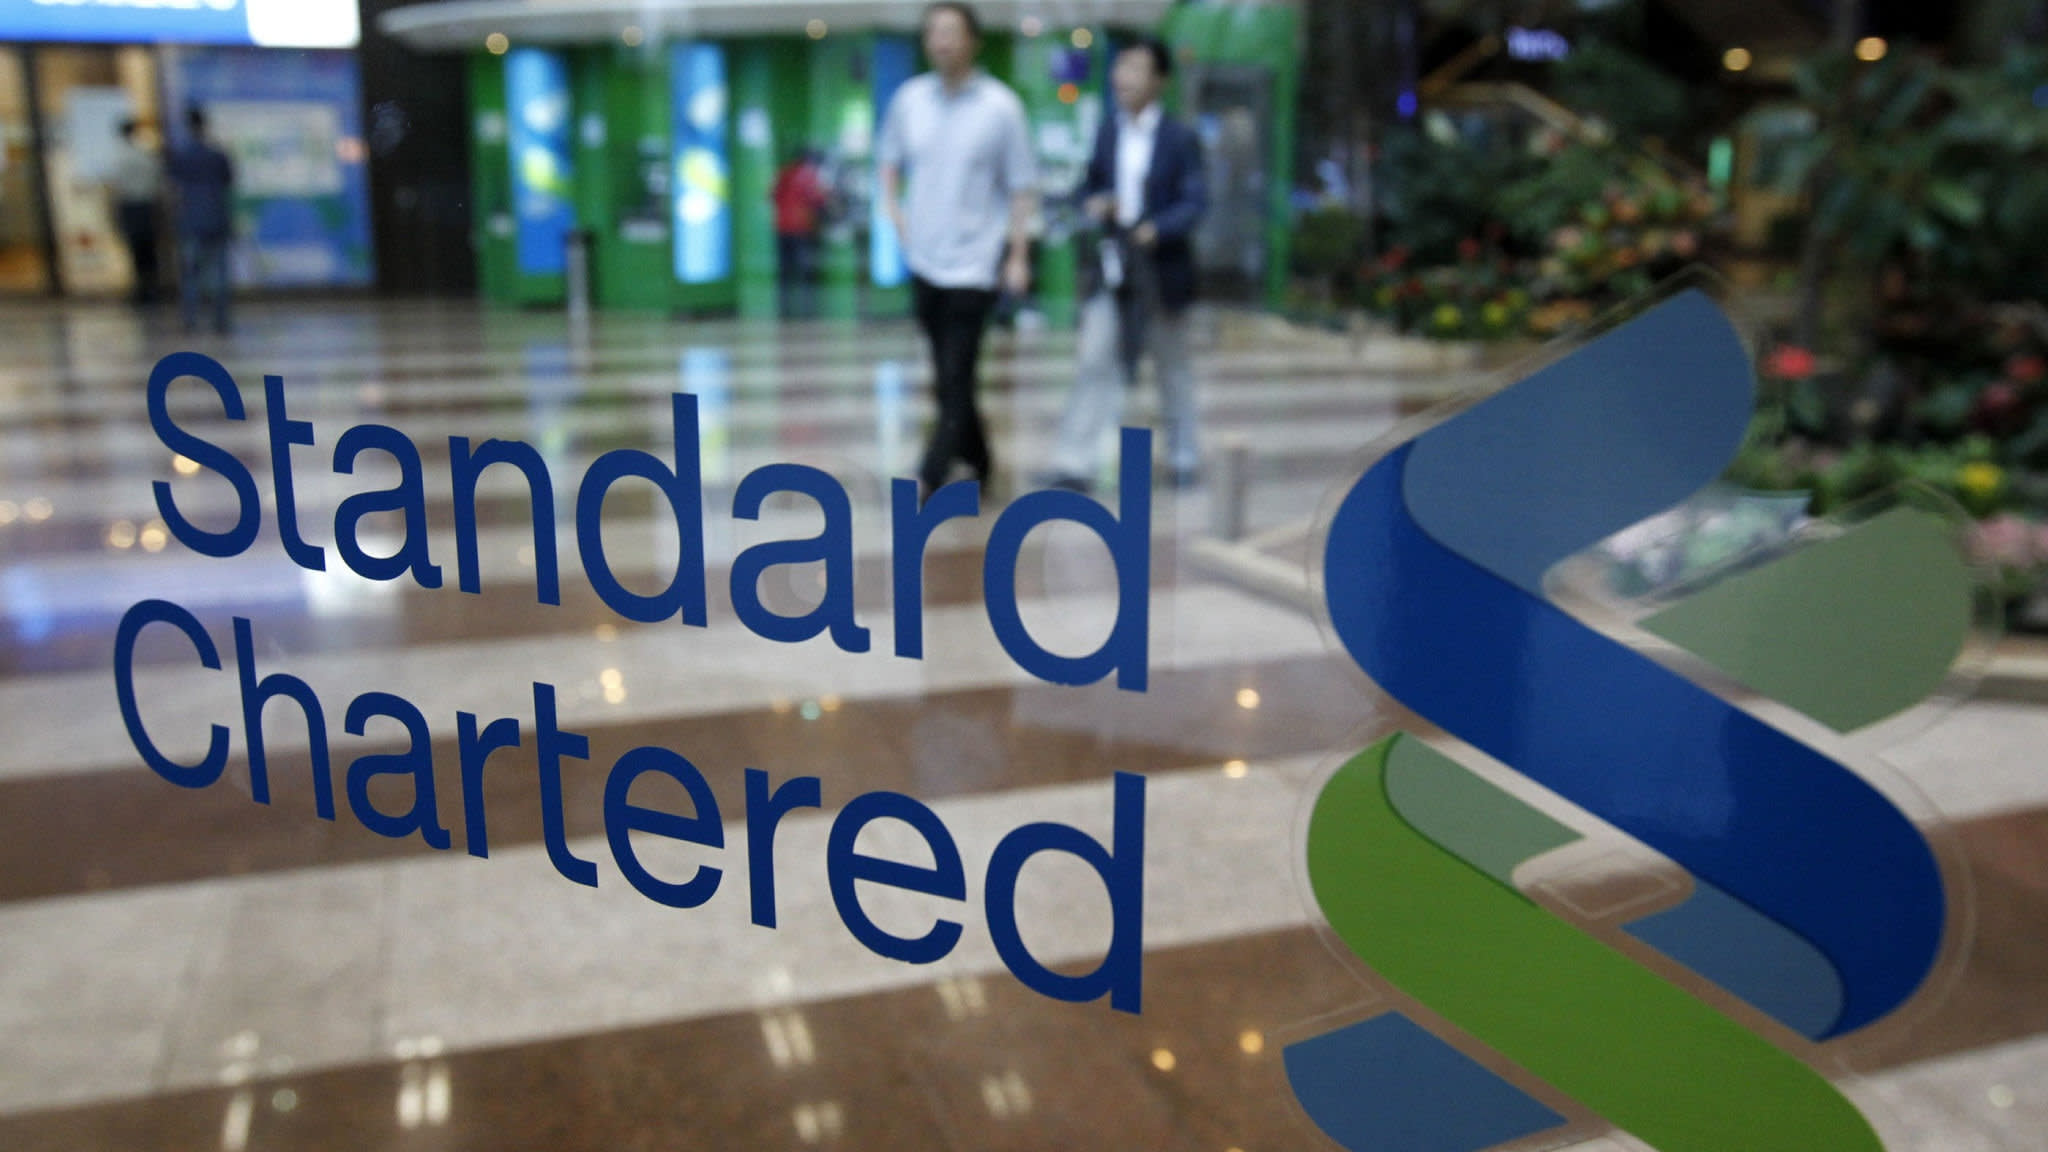 Temasek frustrated with Standard Chartered turnround